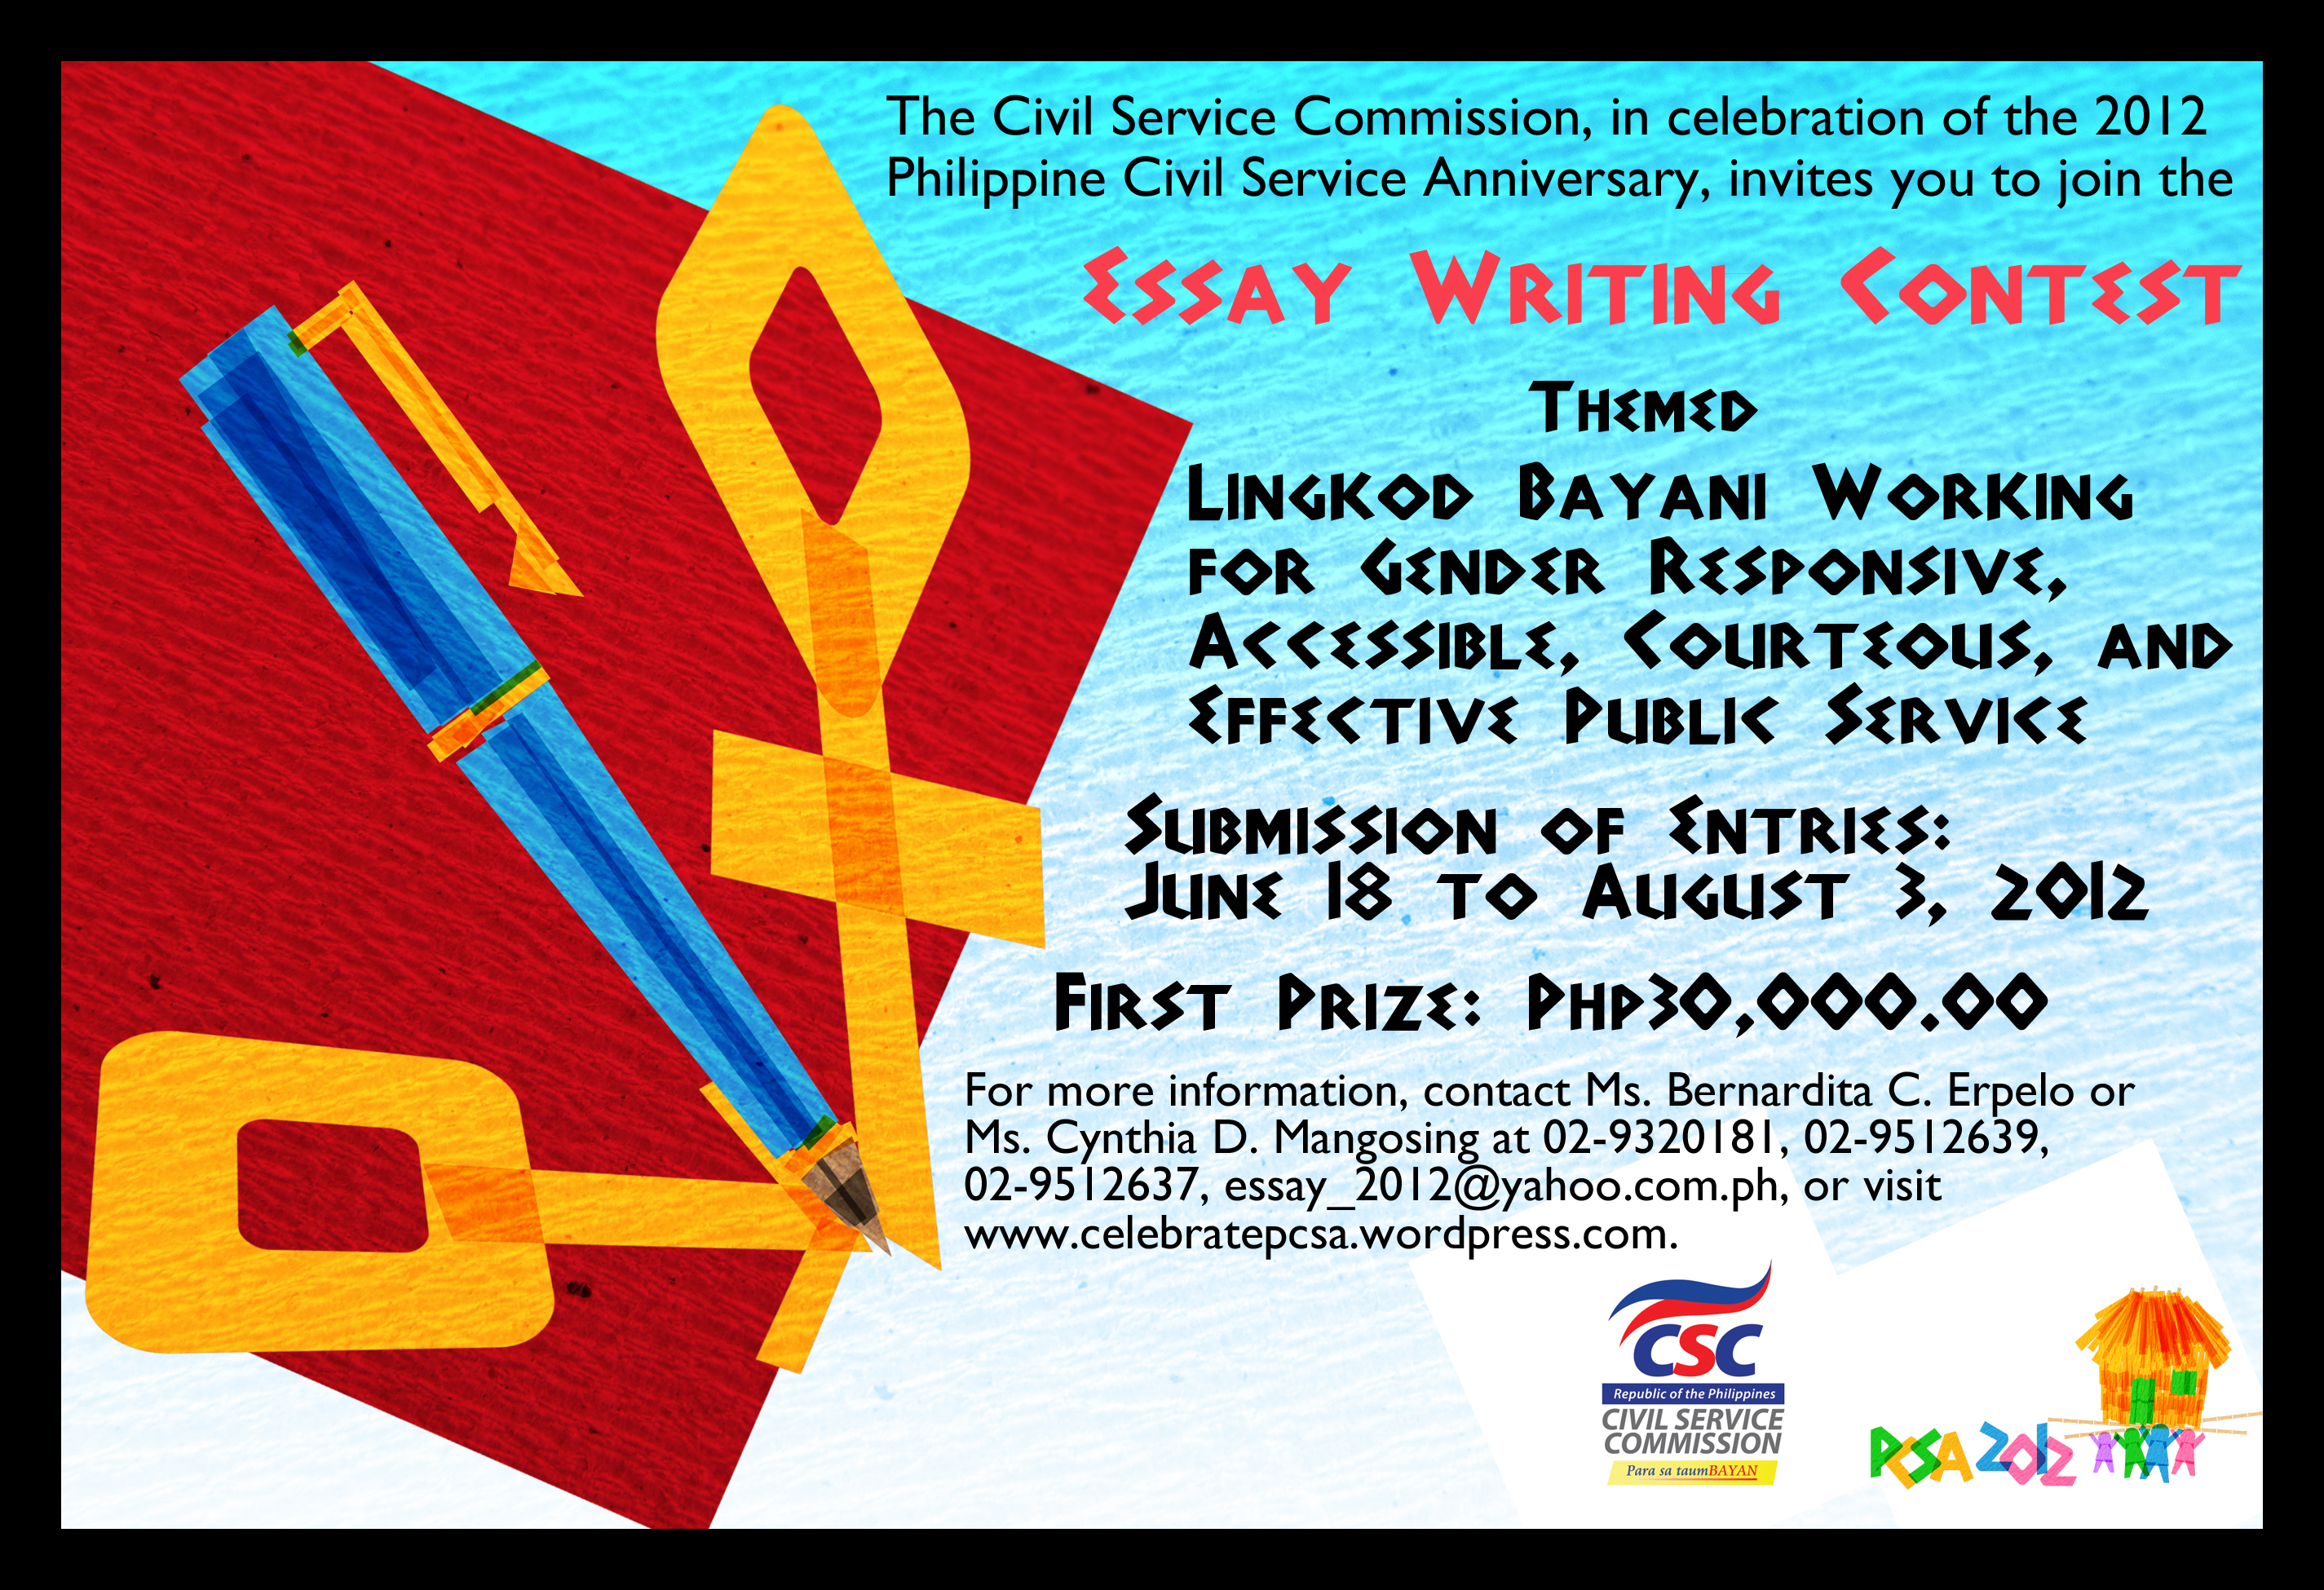 002 Essay Writing Contest 2012pcsa Flyer Kubo Essay3 Incredible Free Contests 2018 International Competitions For High School Students India Full